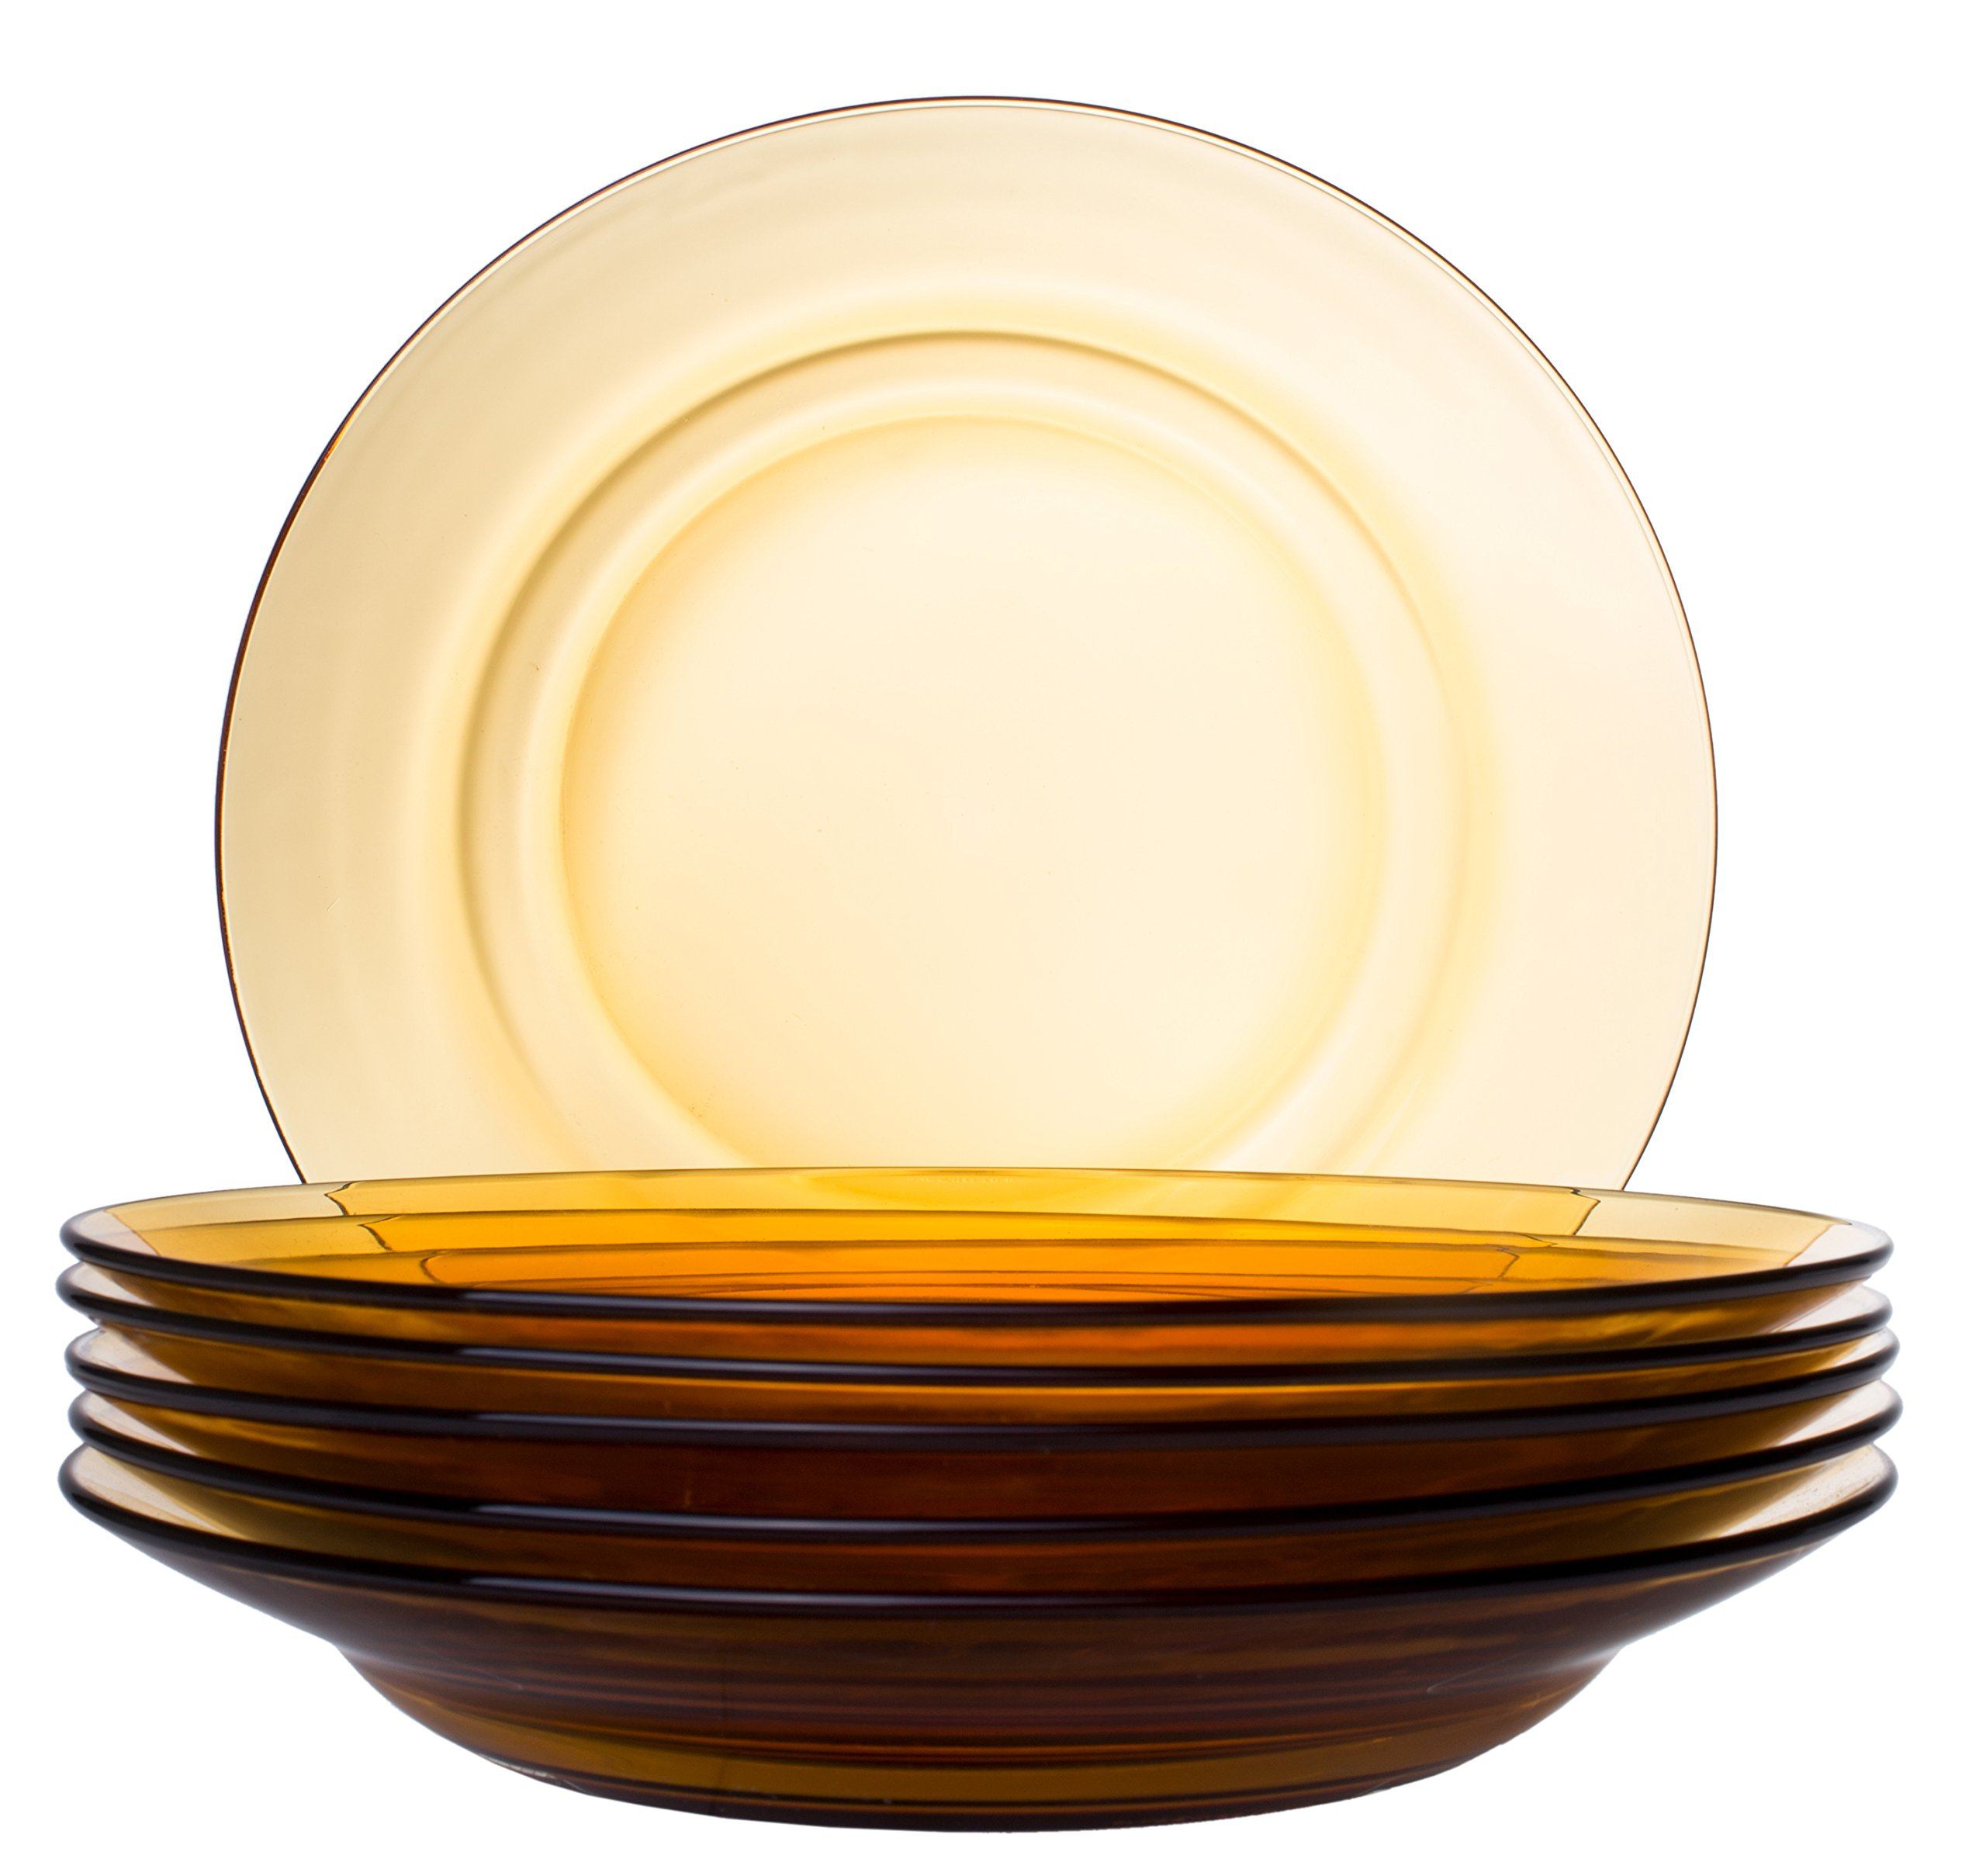 Classic Round Glass Soup Bowl, Pasta/Salad Plate in Orange - Set of 6